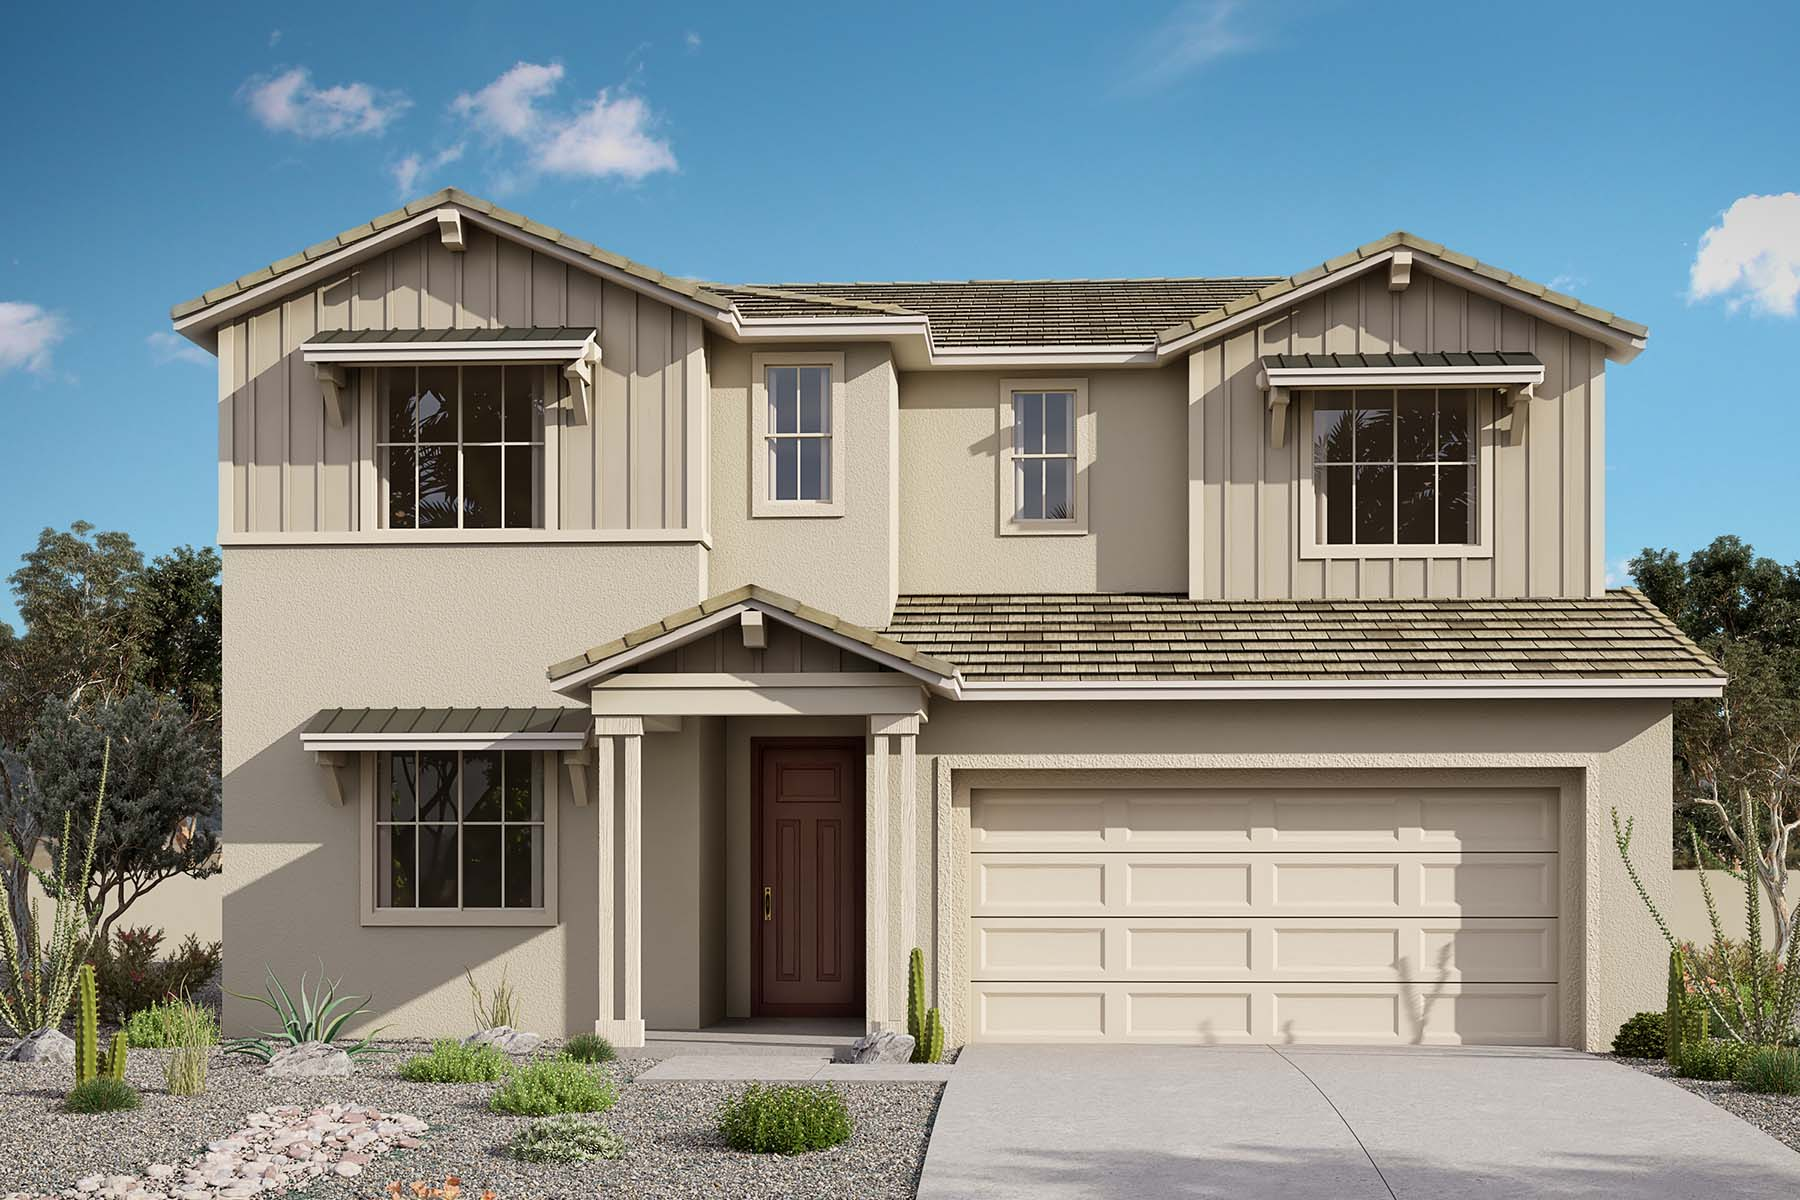 Willowleaf Plan Elevation Front at Brookside at Arroyo Seco in Buckeye Arizona by Mattamy Homes